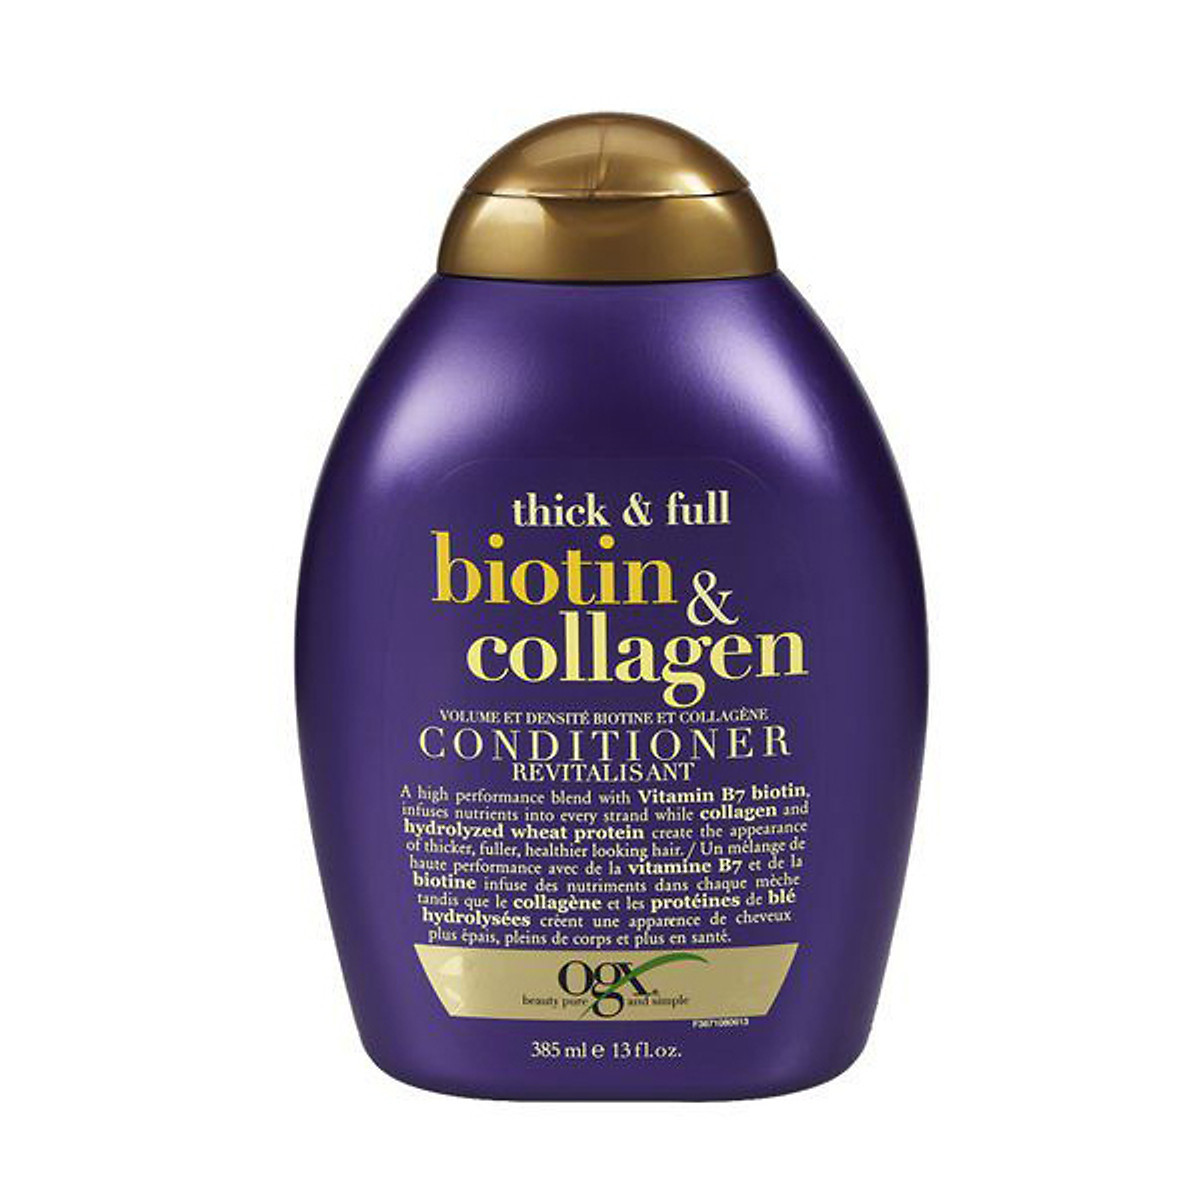 Dầu Xả Ogx Biotin & Collagen Conditioner 385ml